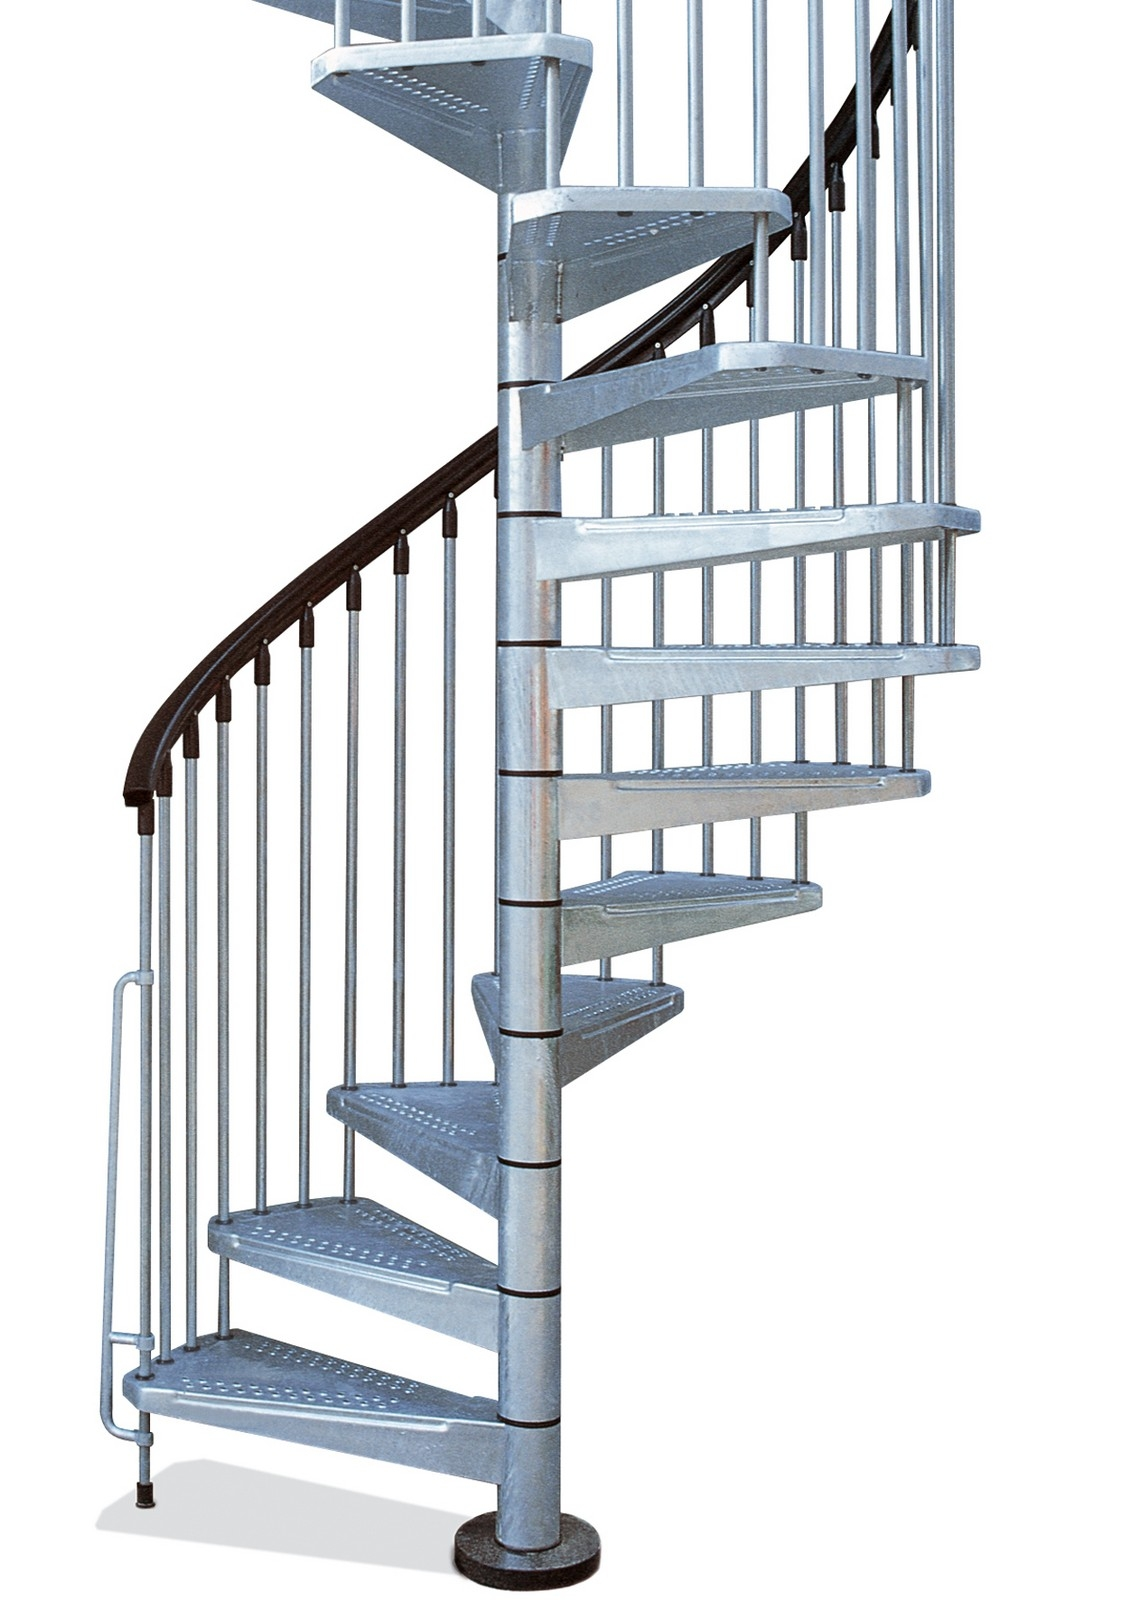 Metal Outdoor Spiral Staircase Exterior Stairs   Outdoor Metal Spiral Staircase For Sale   Wooden Staircases   Dipped Galvanized   Wrought Iron   Railing Design   Cast Iron